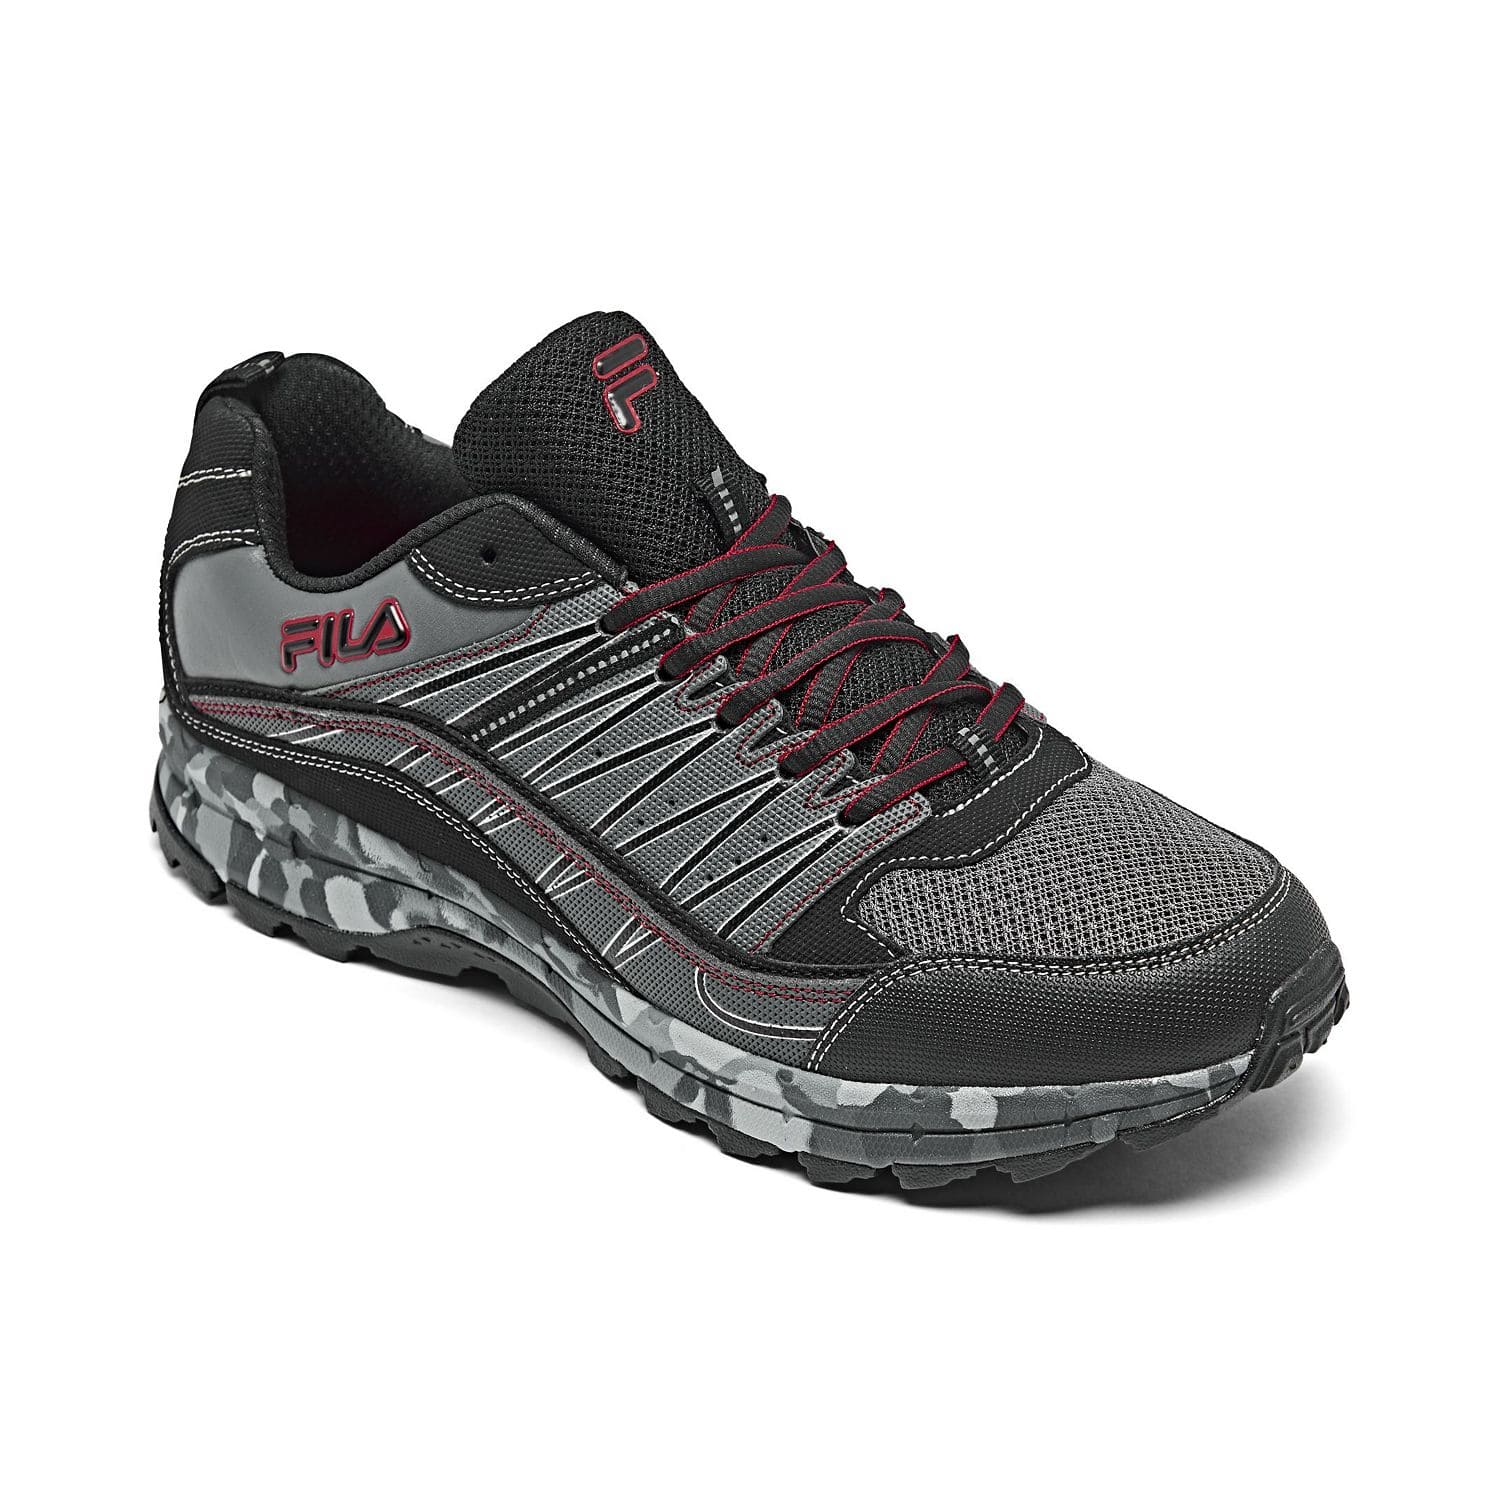 Fila Men's Fondato 4 Running Sneakers $10, Evergrand TR Trail Running Sneakers $15 (Limited Sizes) or less w/ SD Cashback & More at Macy's w/ Free S&H on $25+